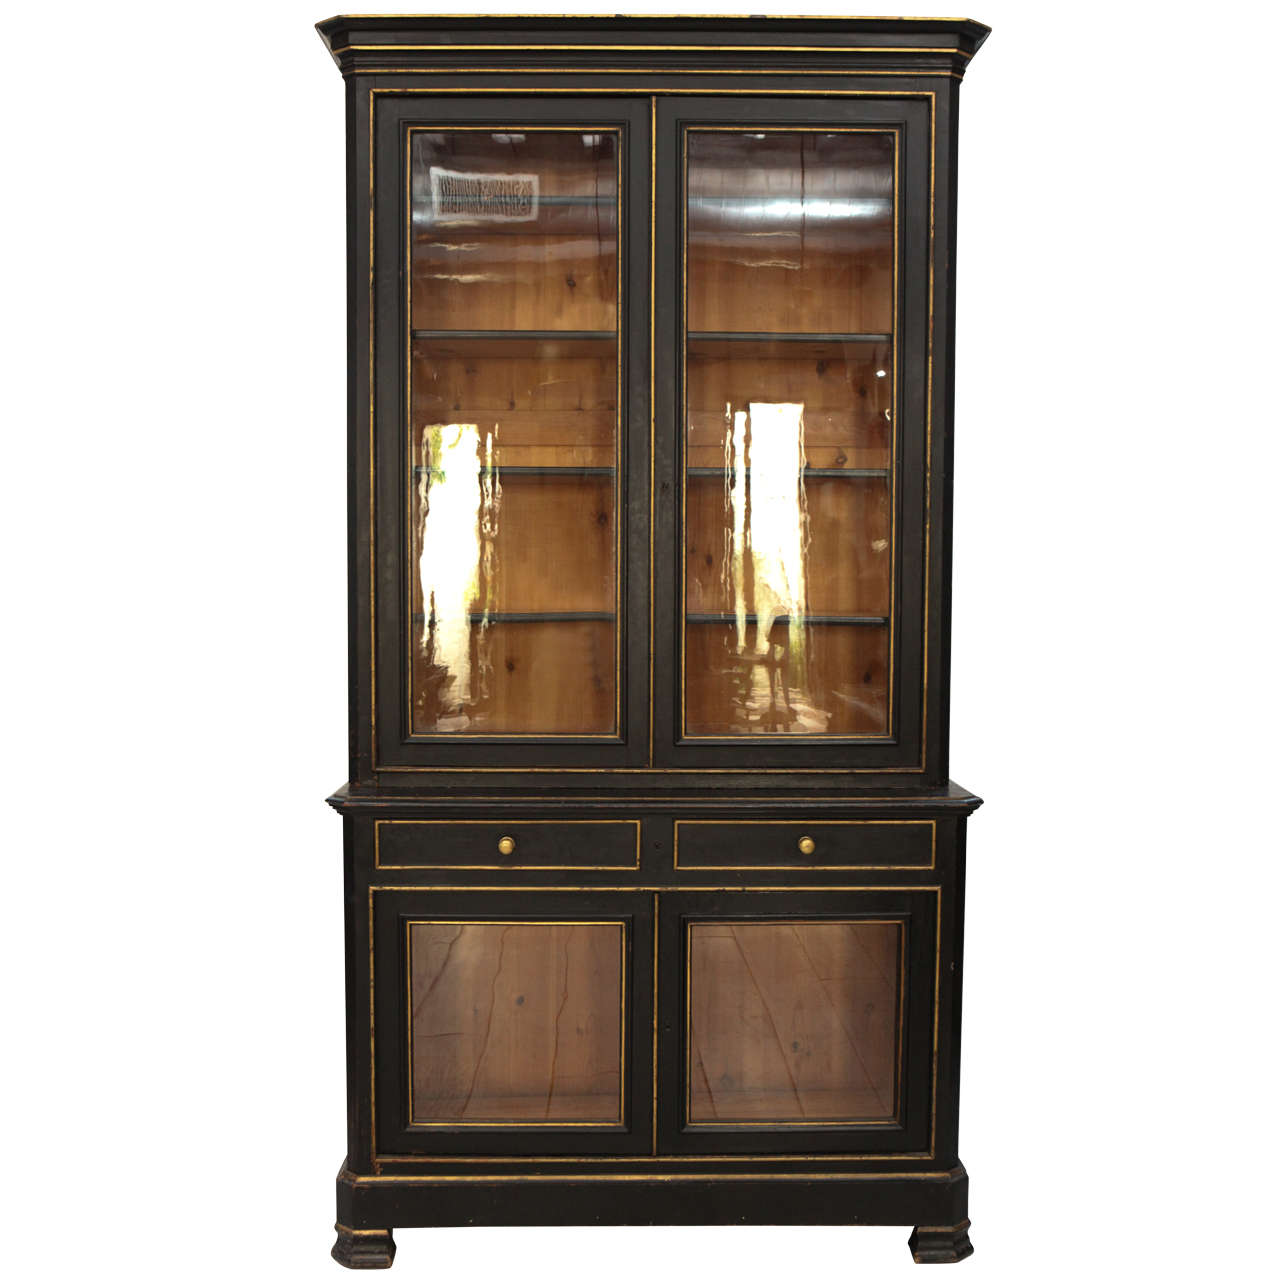 Kitchen cabinets doors only - Tall China Cabinet Solving Storage Issues Homesfeed